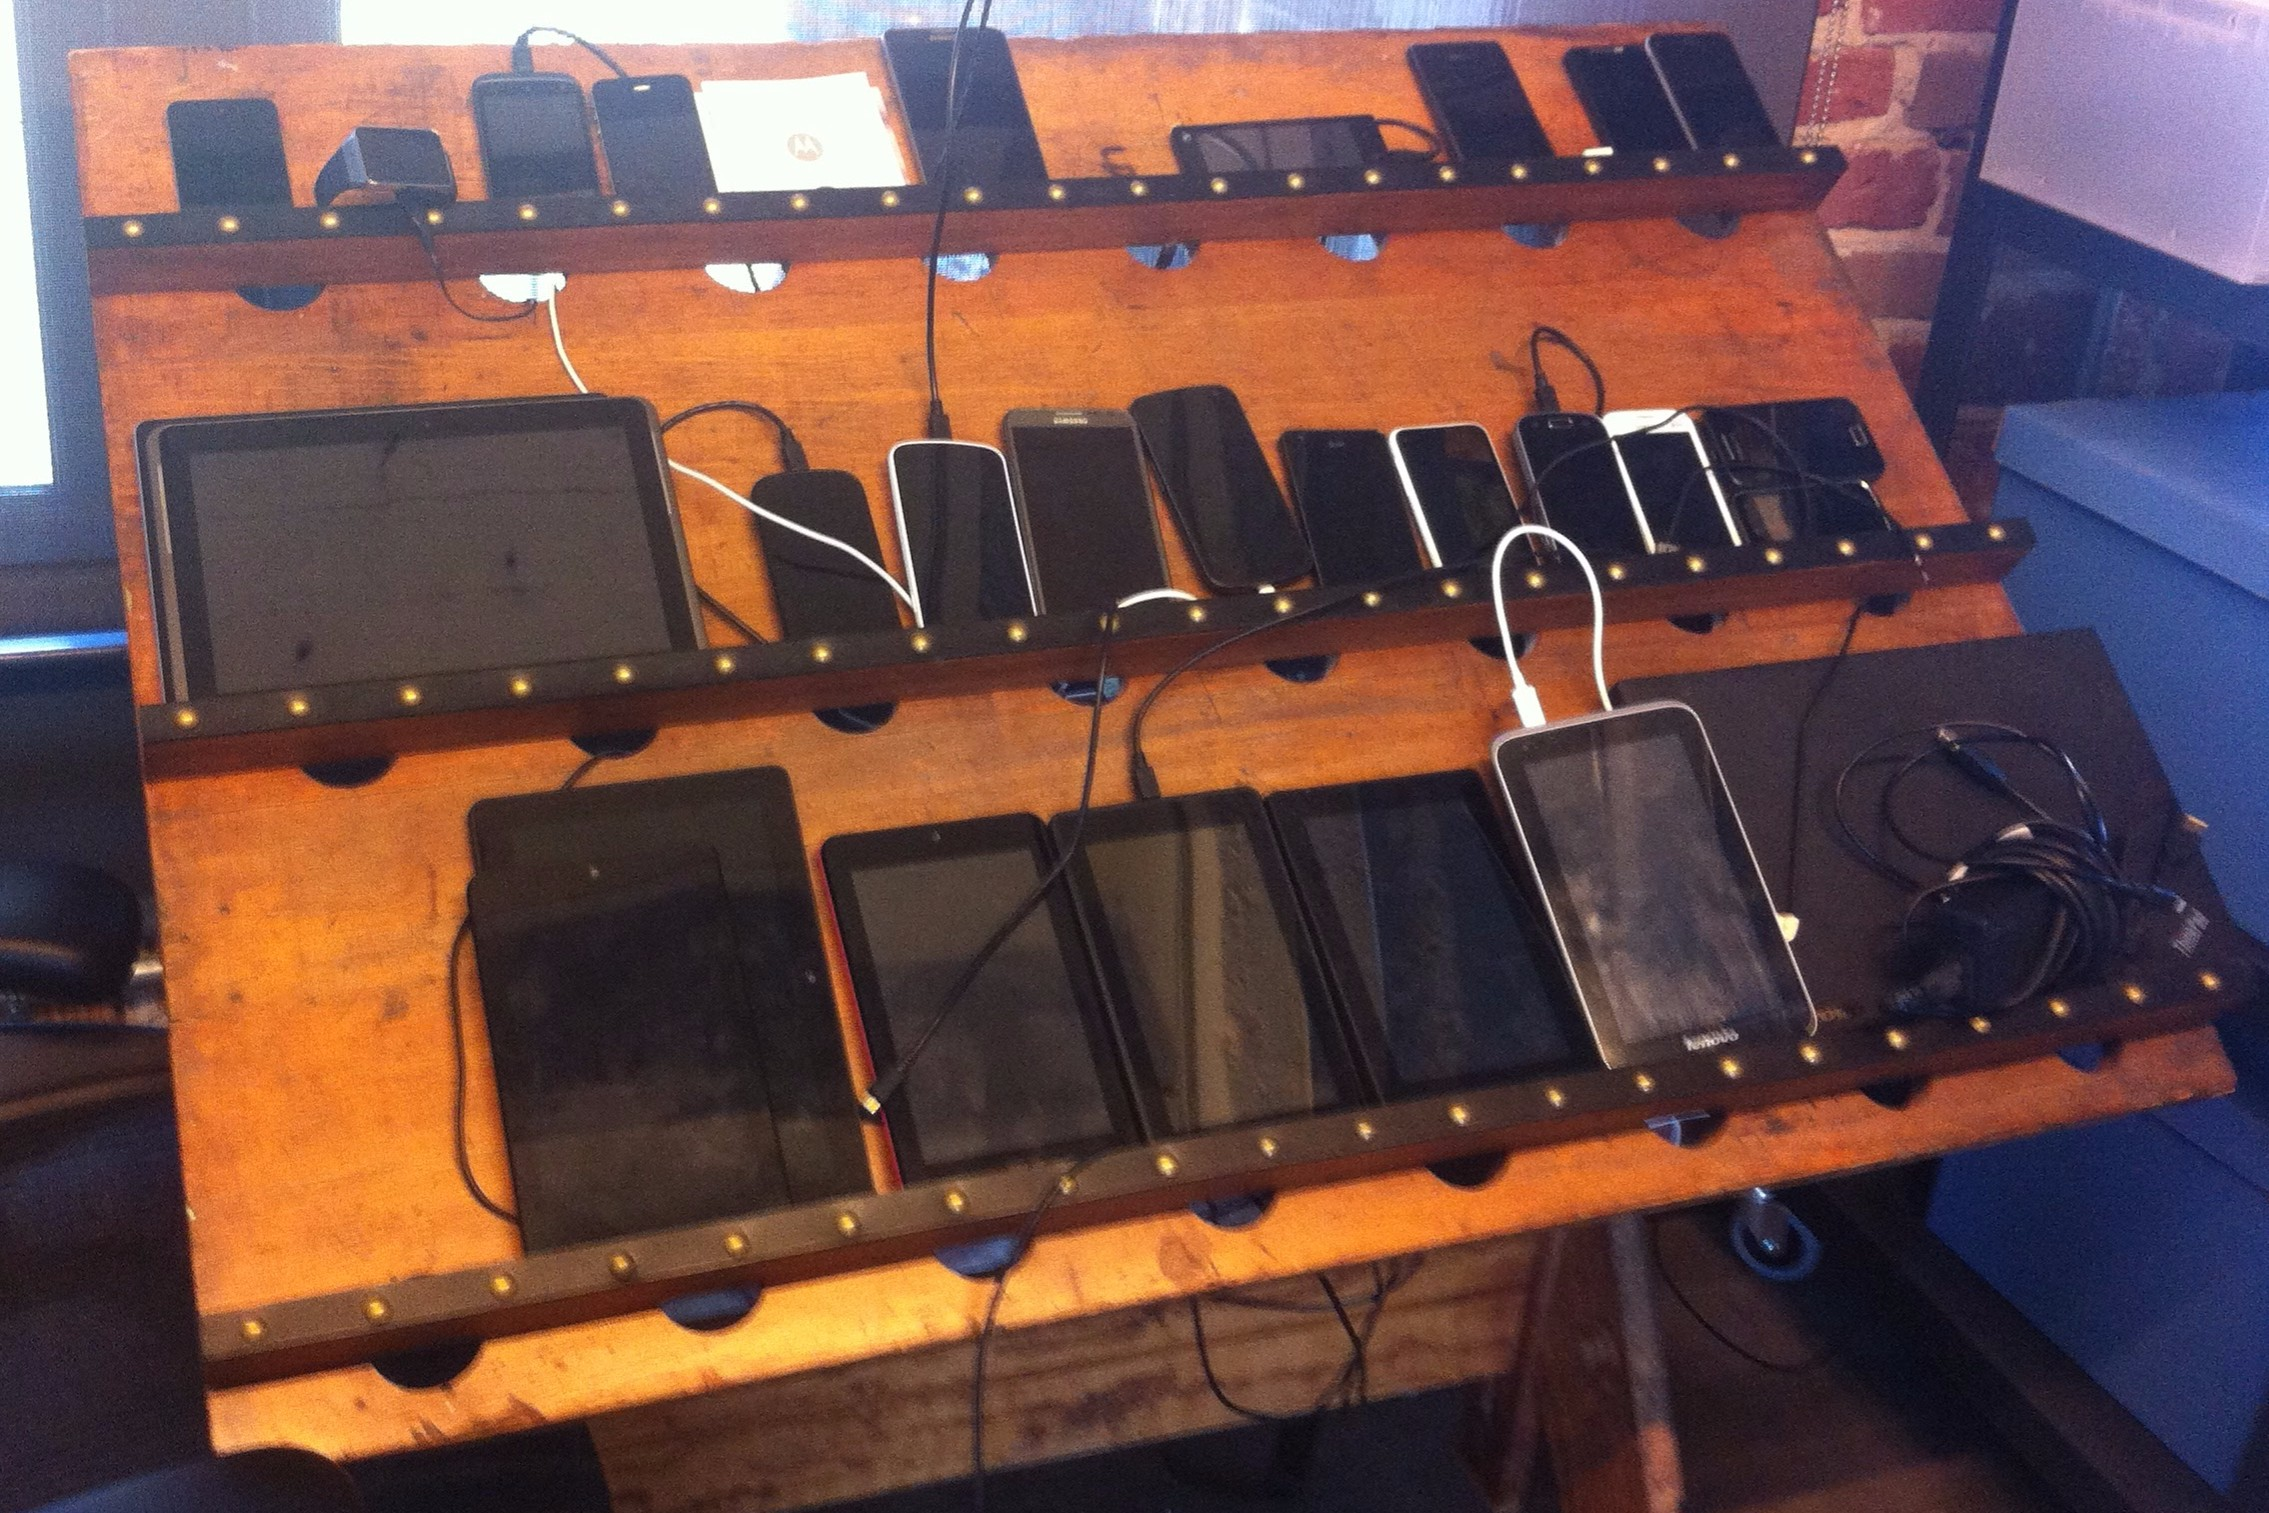 A device farm at Quip headquarters in San Francisco.